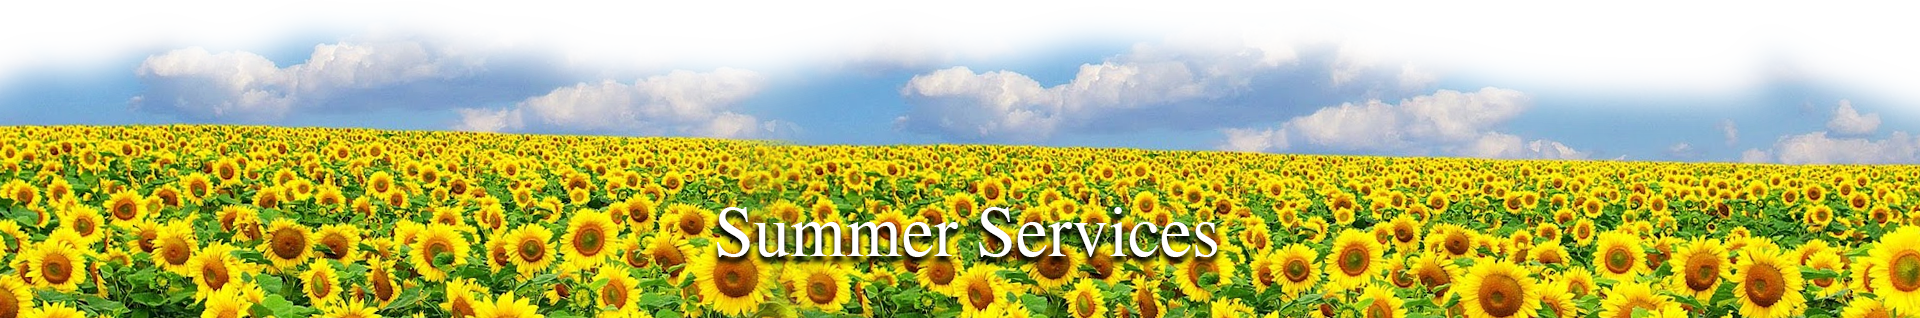 Leicester Unitarians Great Meeting Chapel summer services